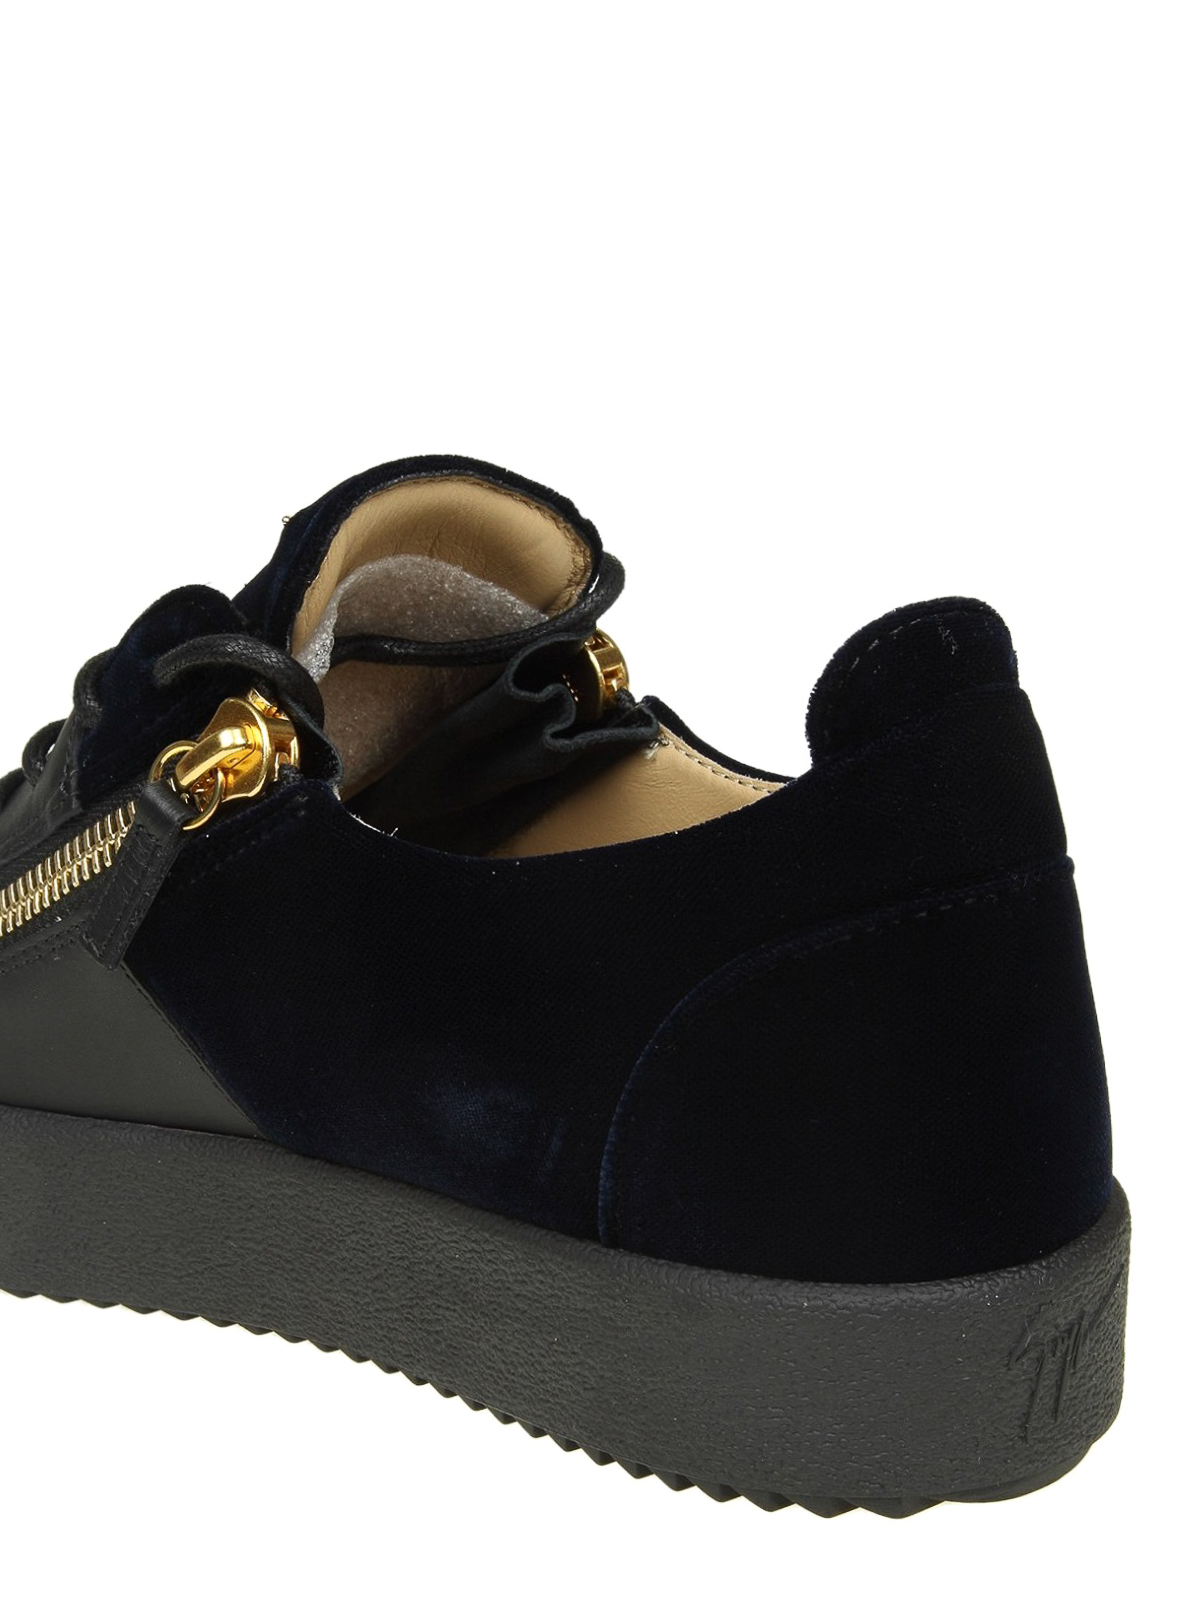 3a84a3f243f82 Double black leather and blue velvet sneakers shop online: GIUSEPPE ZANOTTI